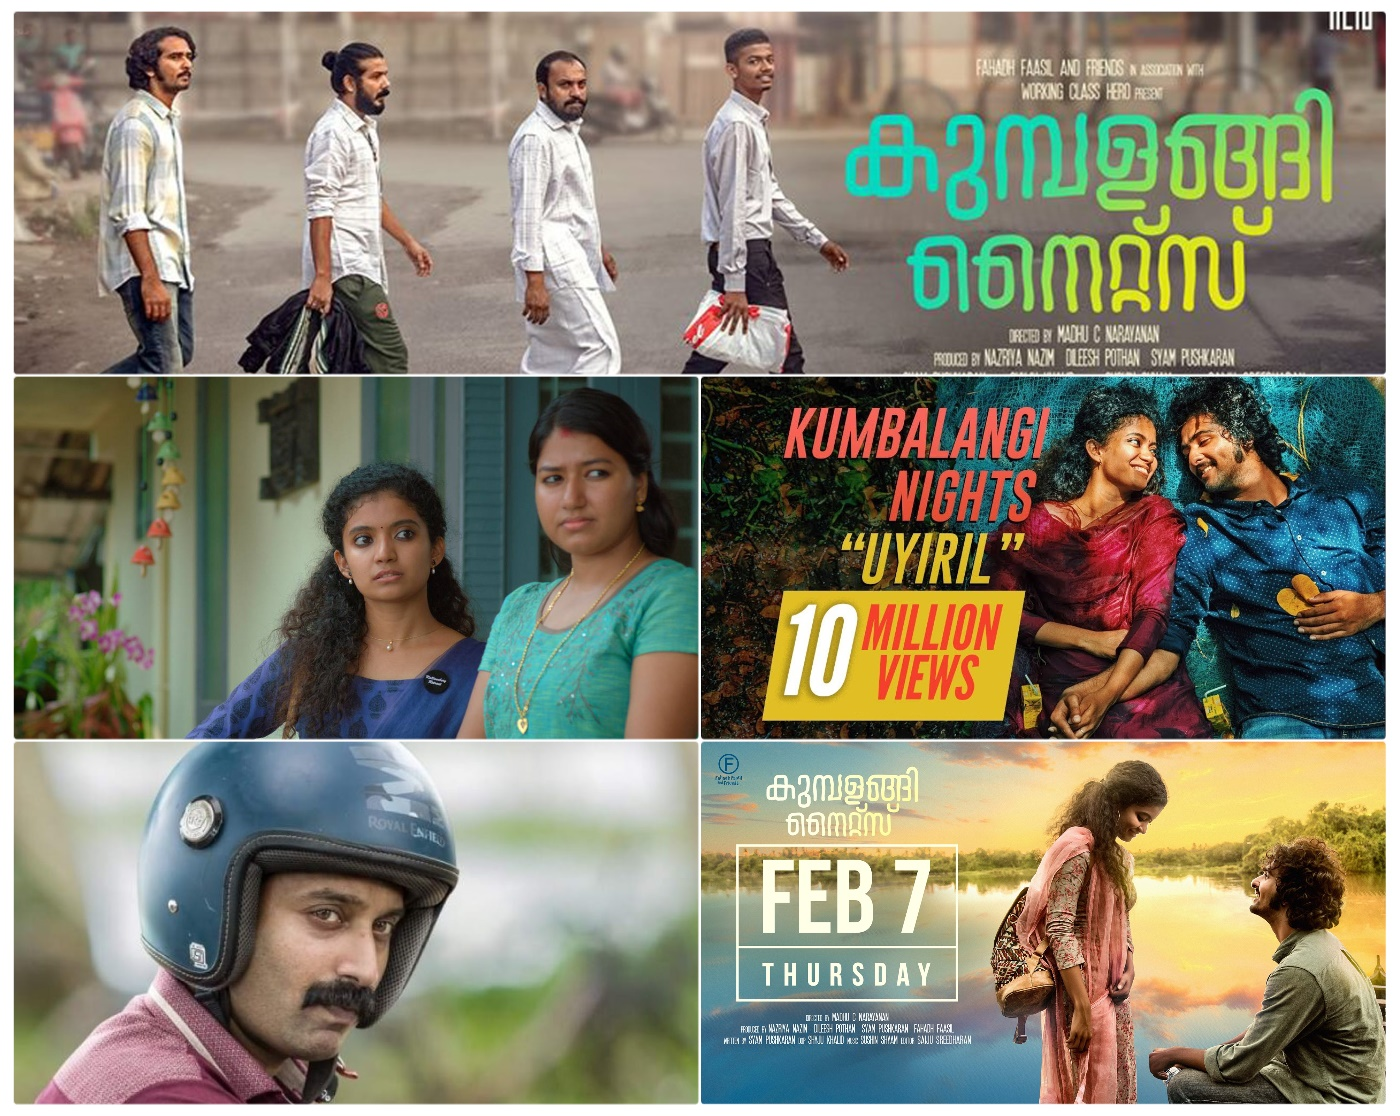 Kumbalangi Nights - Fahadh Faasil, Shane Nigam, Anna Ben & others